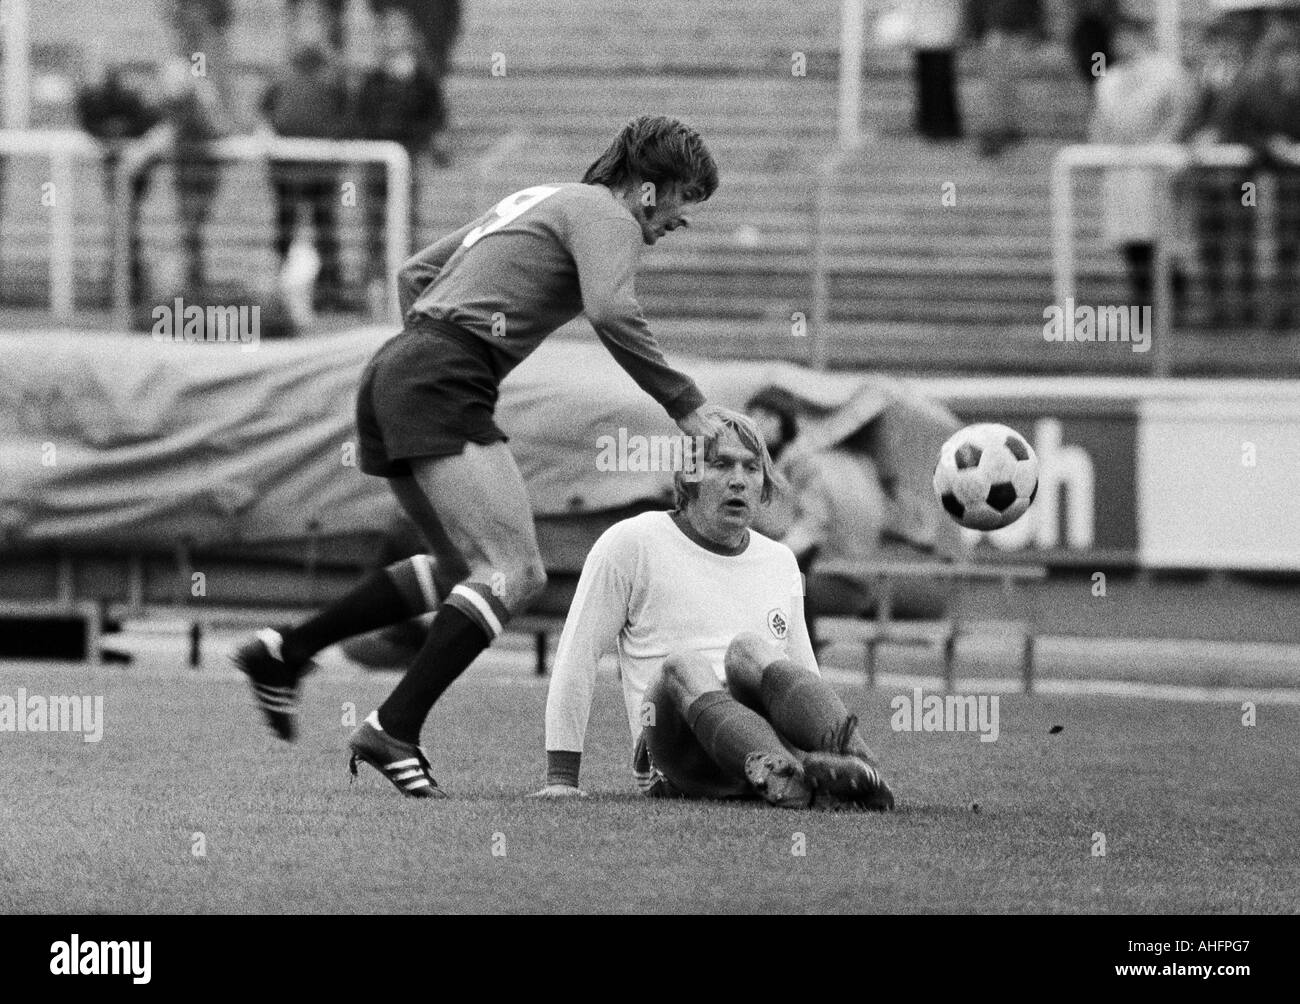 Football Bundesliga 1972 1973 Rot Weiss Oberhausen Versus Stock Photo Alamy